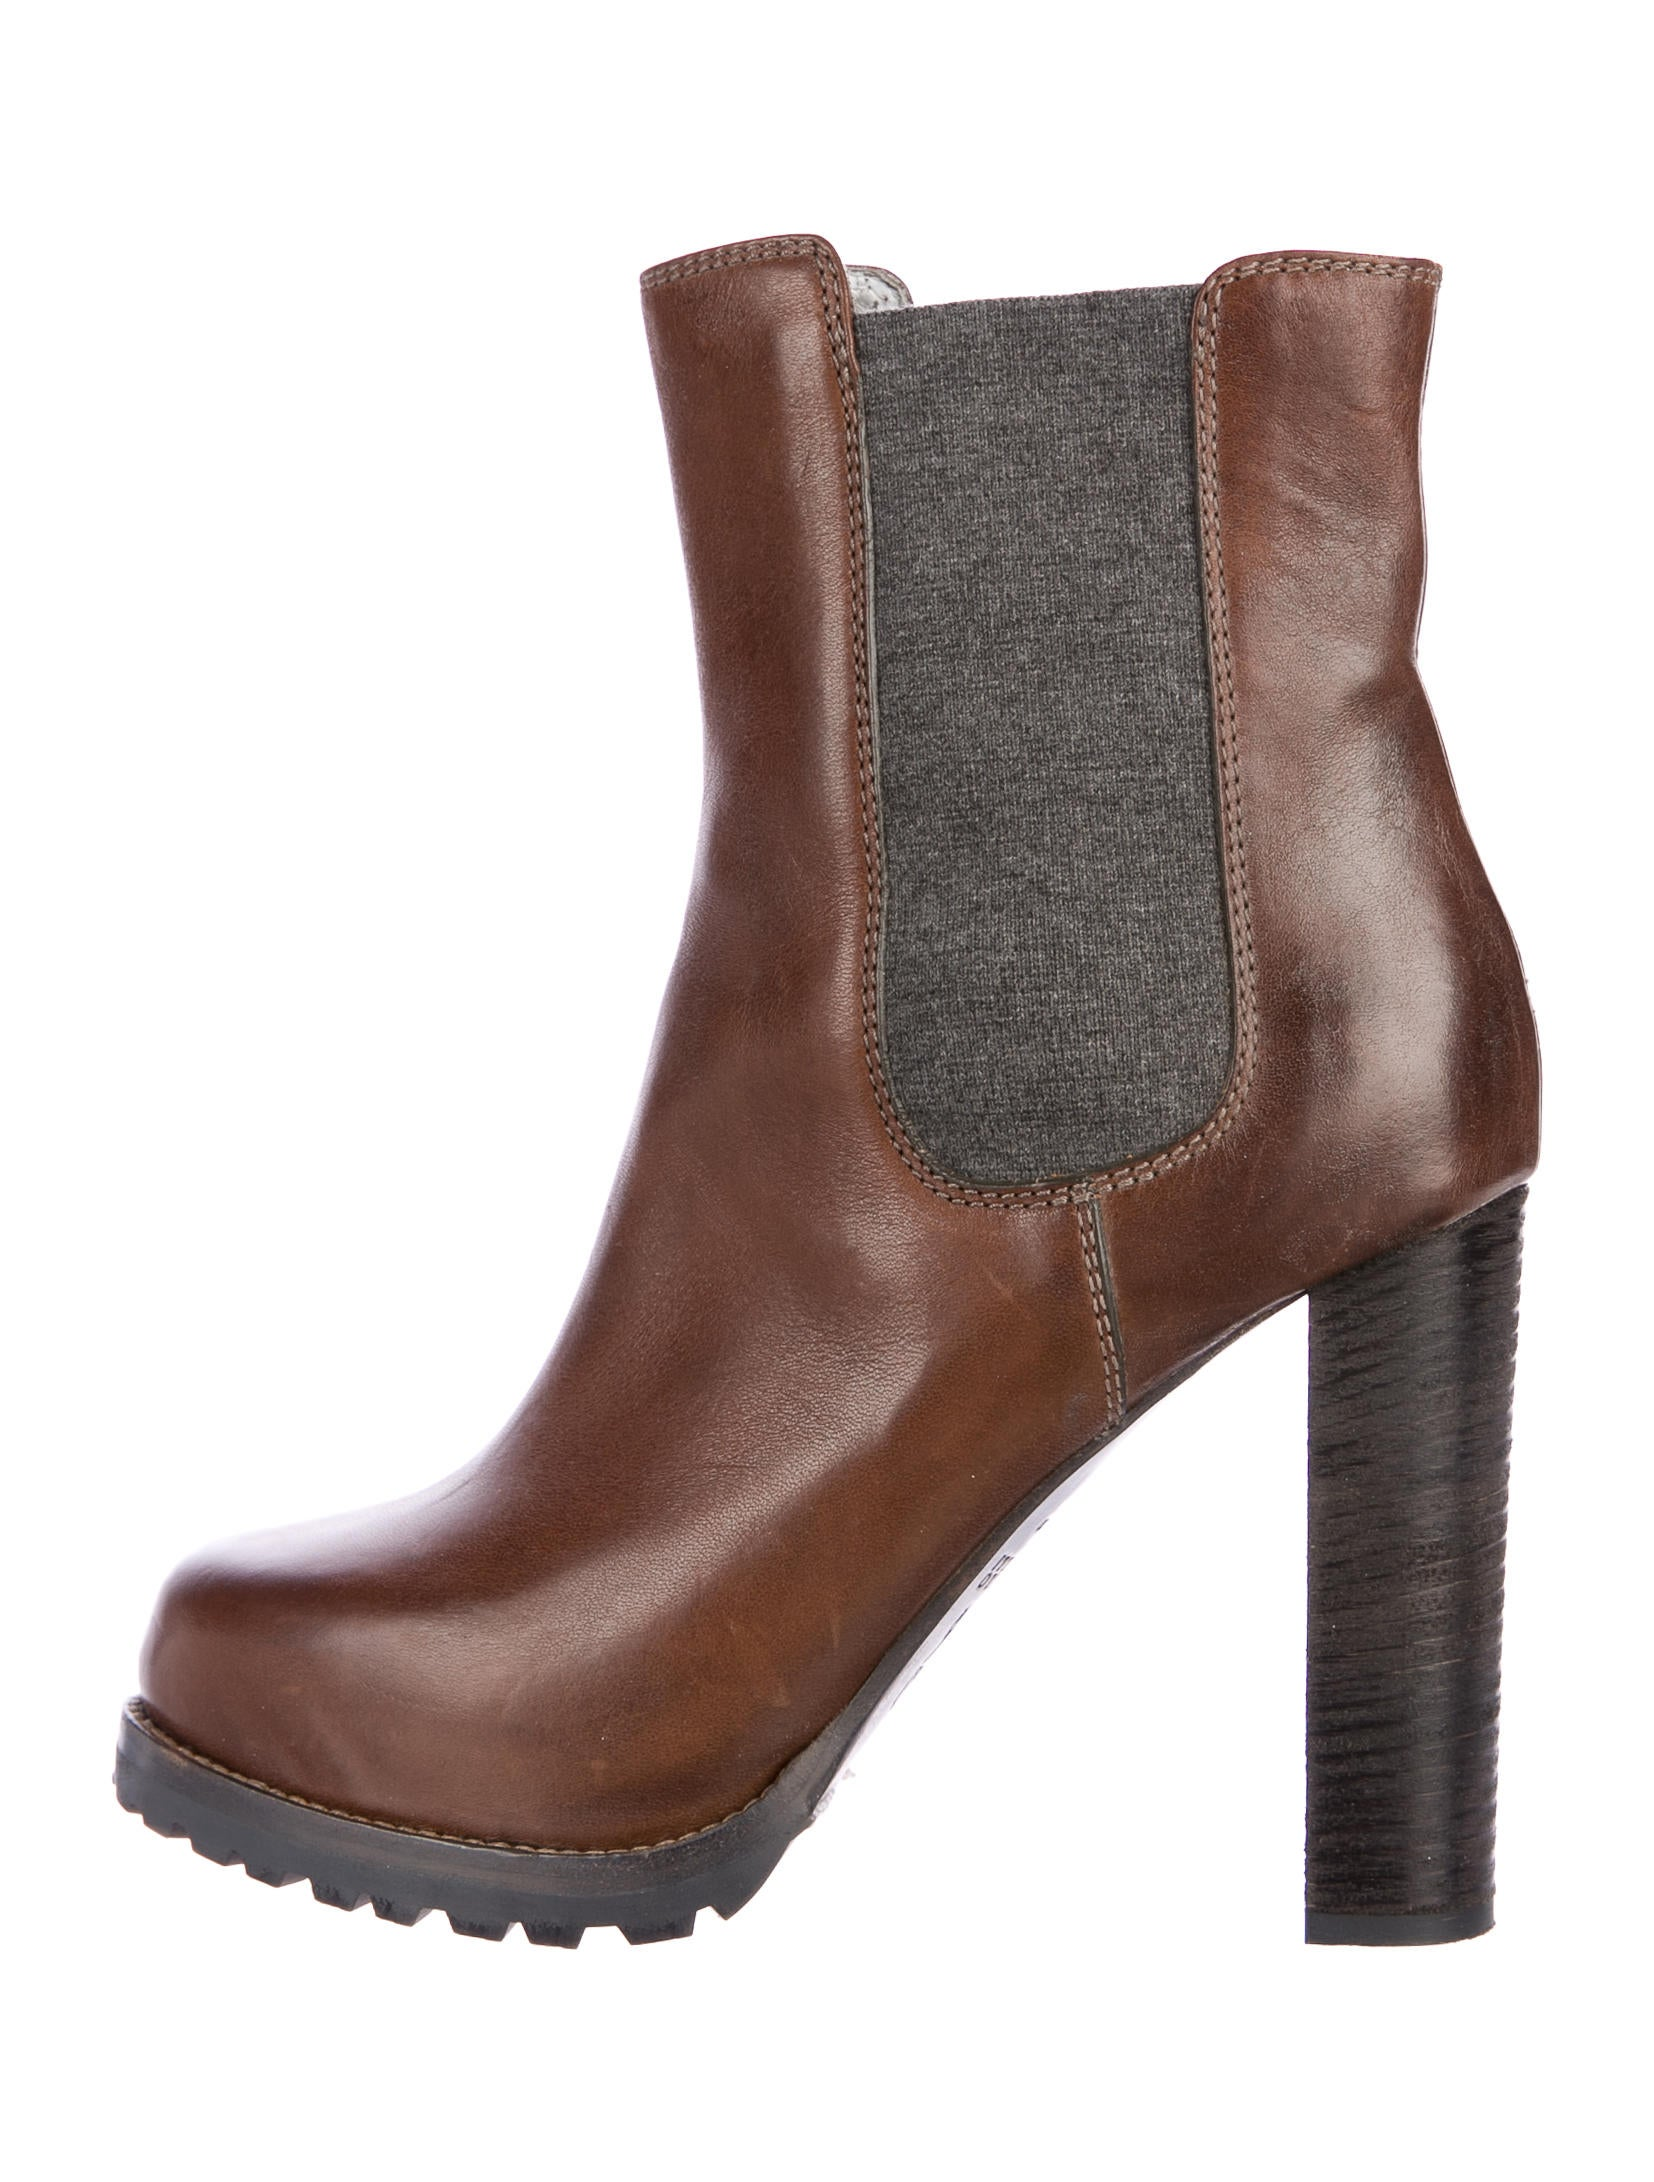 big sale sale online Brunello Cucinelli Leather Round-Toe Ankle Boots geniue stockist online cheap excellent with mastercard sale online bzJWFfy6P